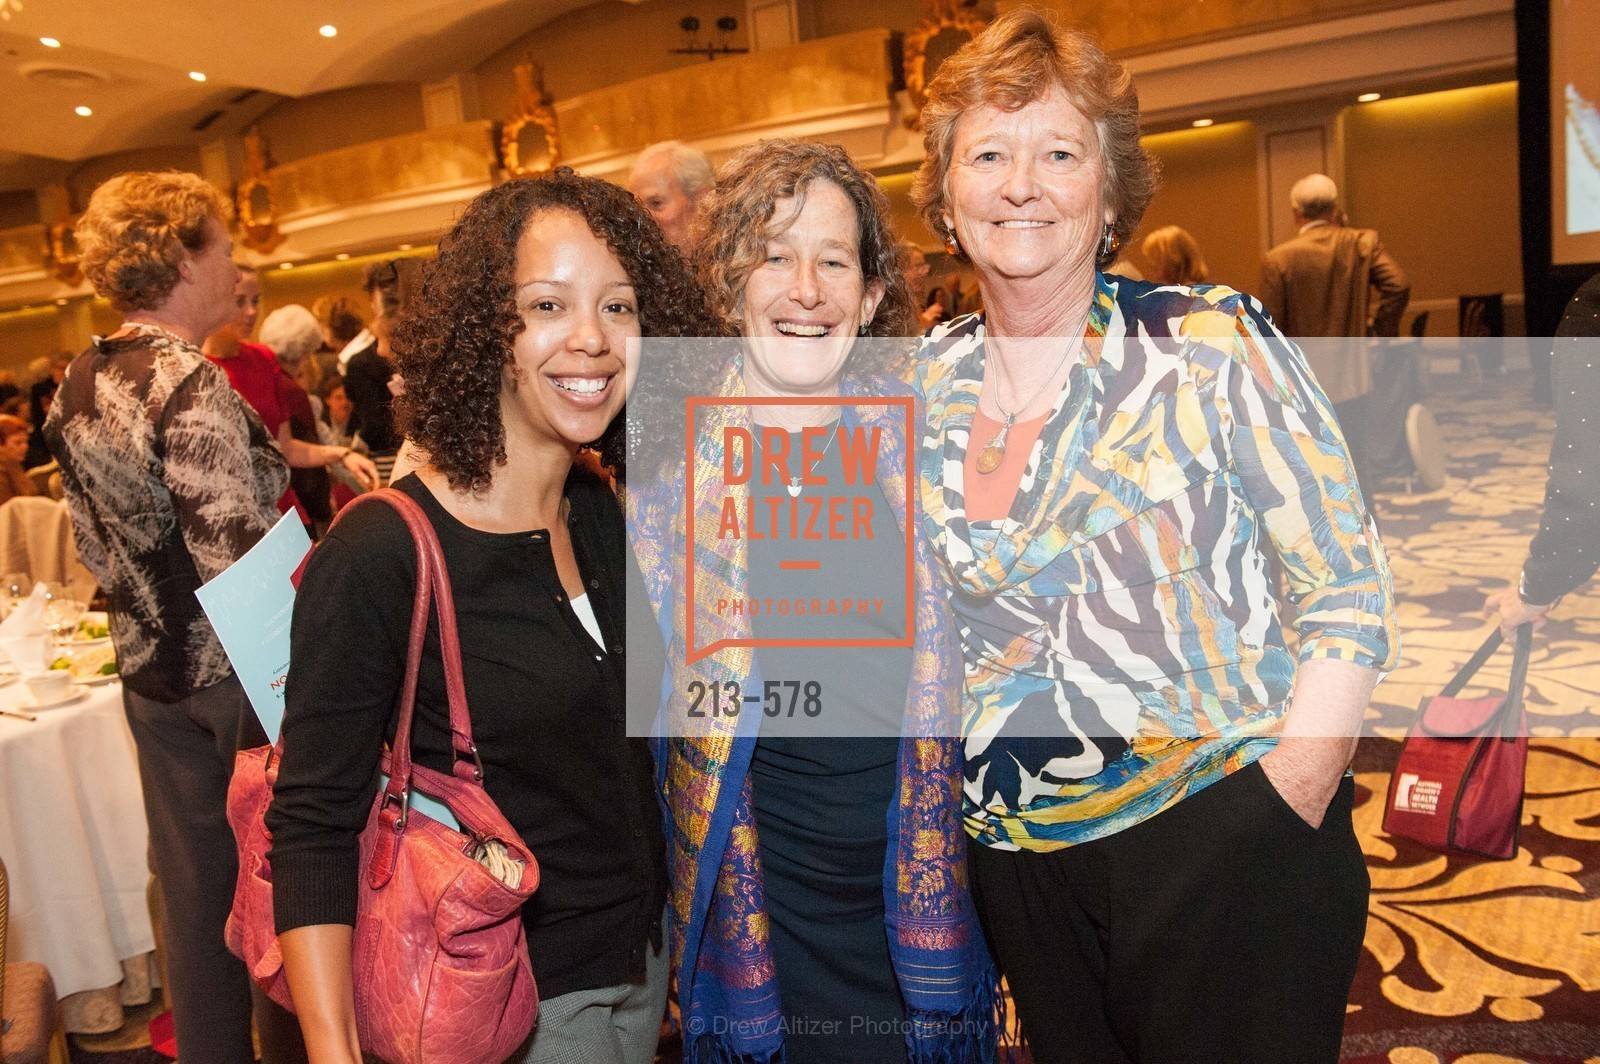 Jennifer Wright, Emily Rosenberg, Martha Ryan, HOMELESS PRENATAL Annual Luncheon 2014, US, October 1st, 2014,Drew Altizer, Drew Altizer Photography, full-service agency, private events, San Francisco photographer, photographer california